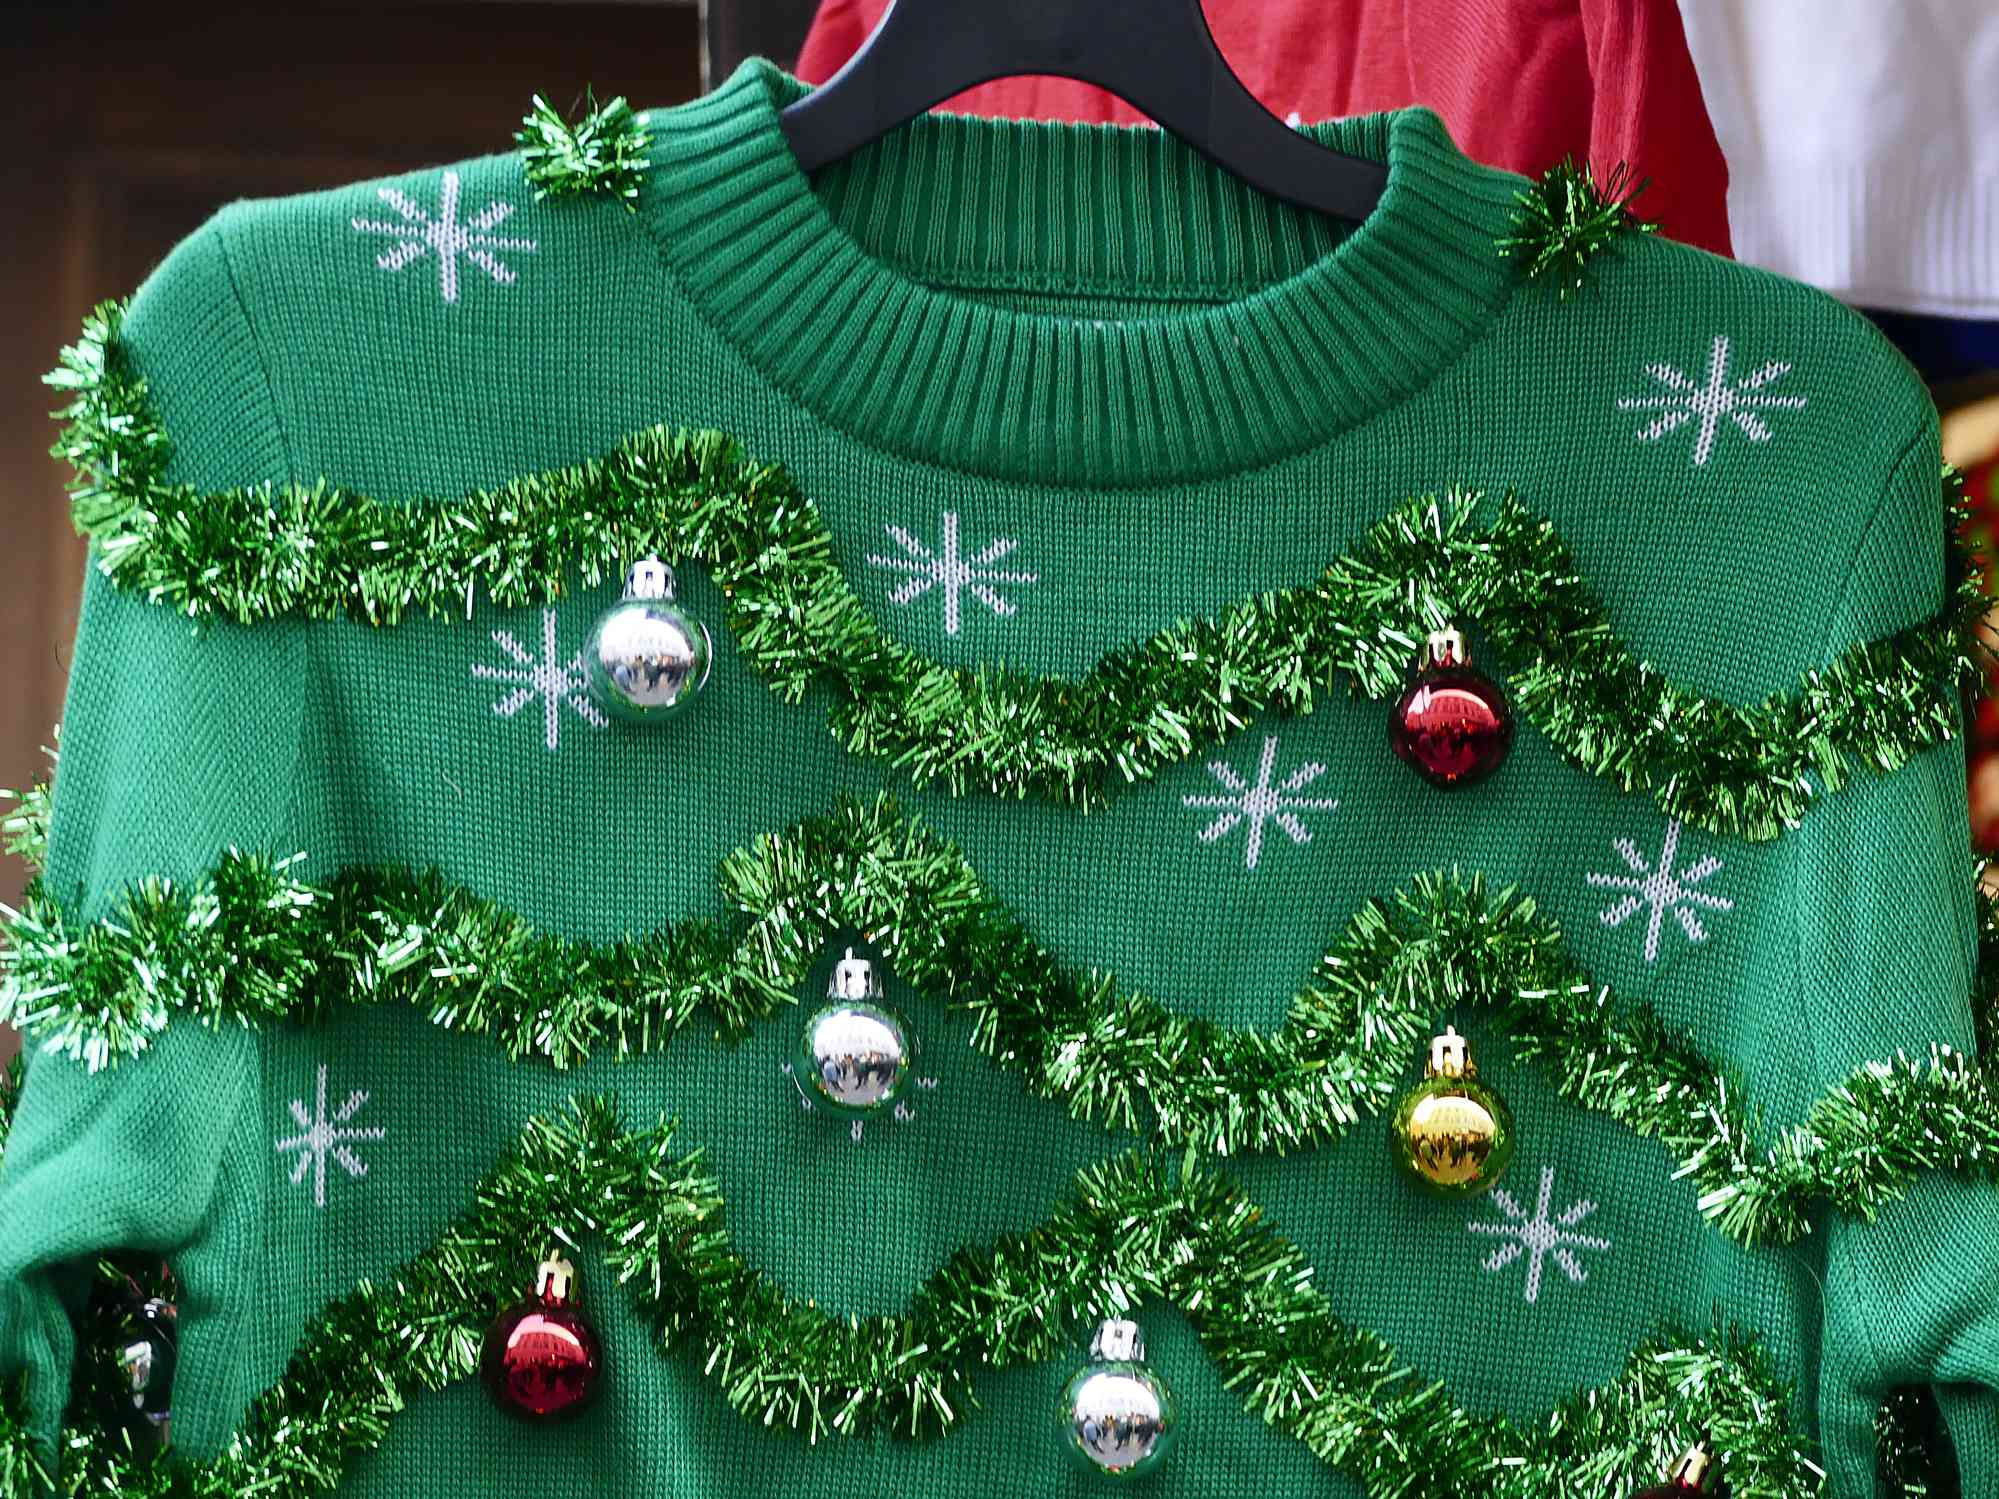 gift exchange ideas - ugly christmas sweater on a hanger